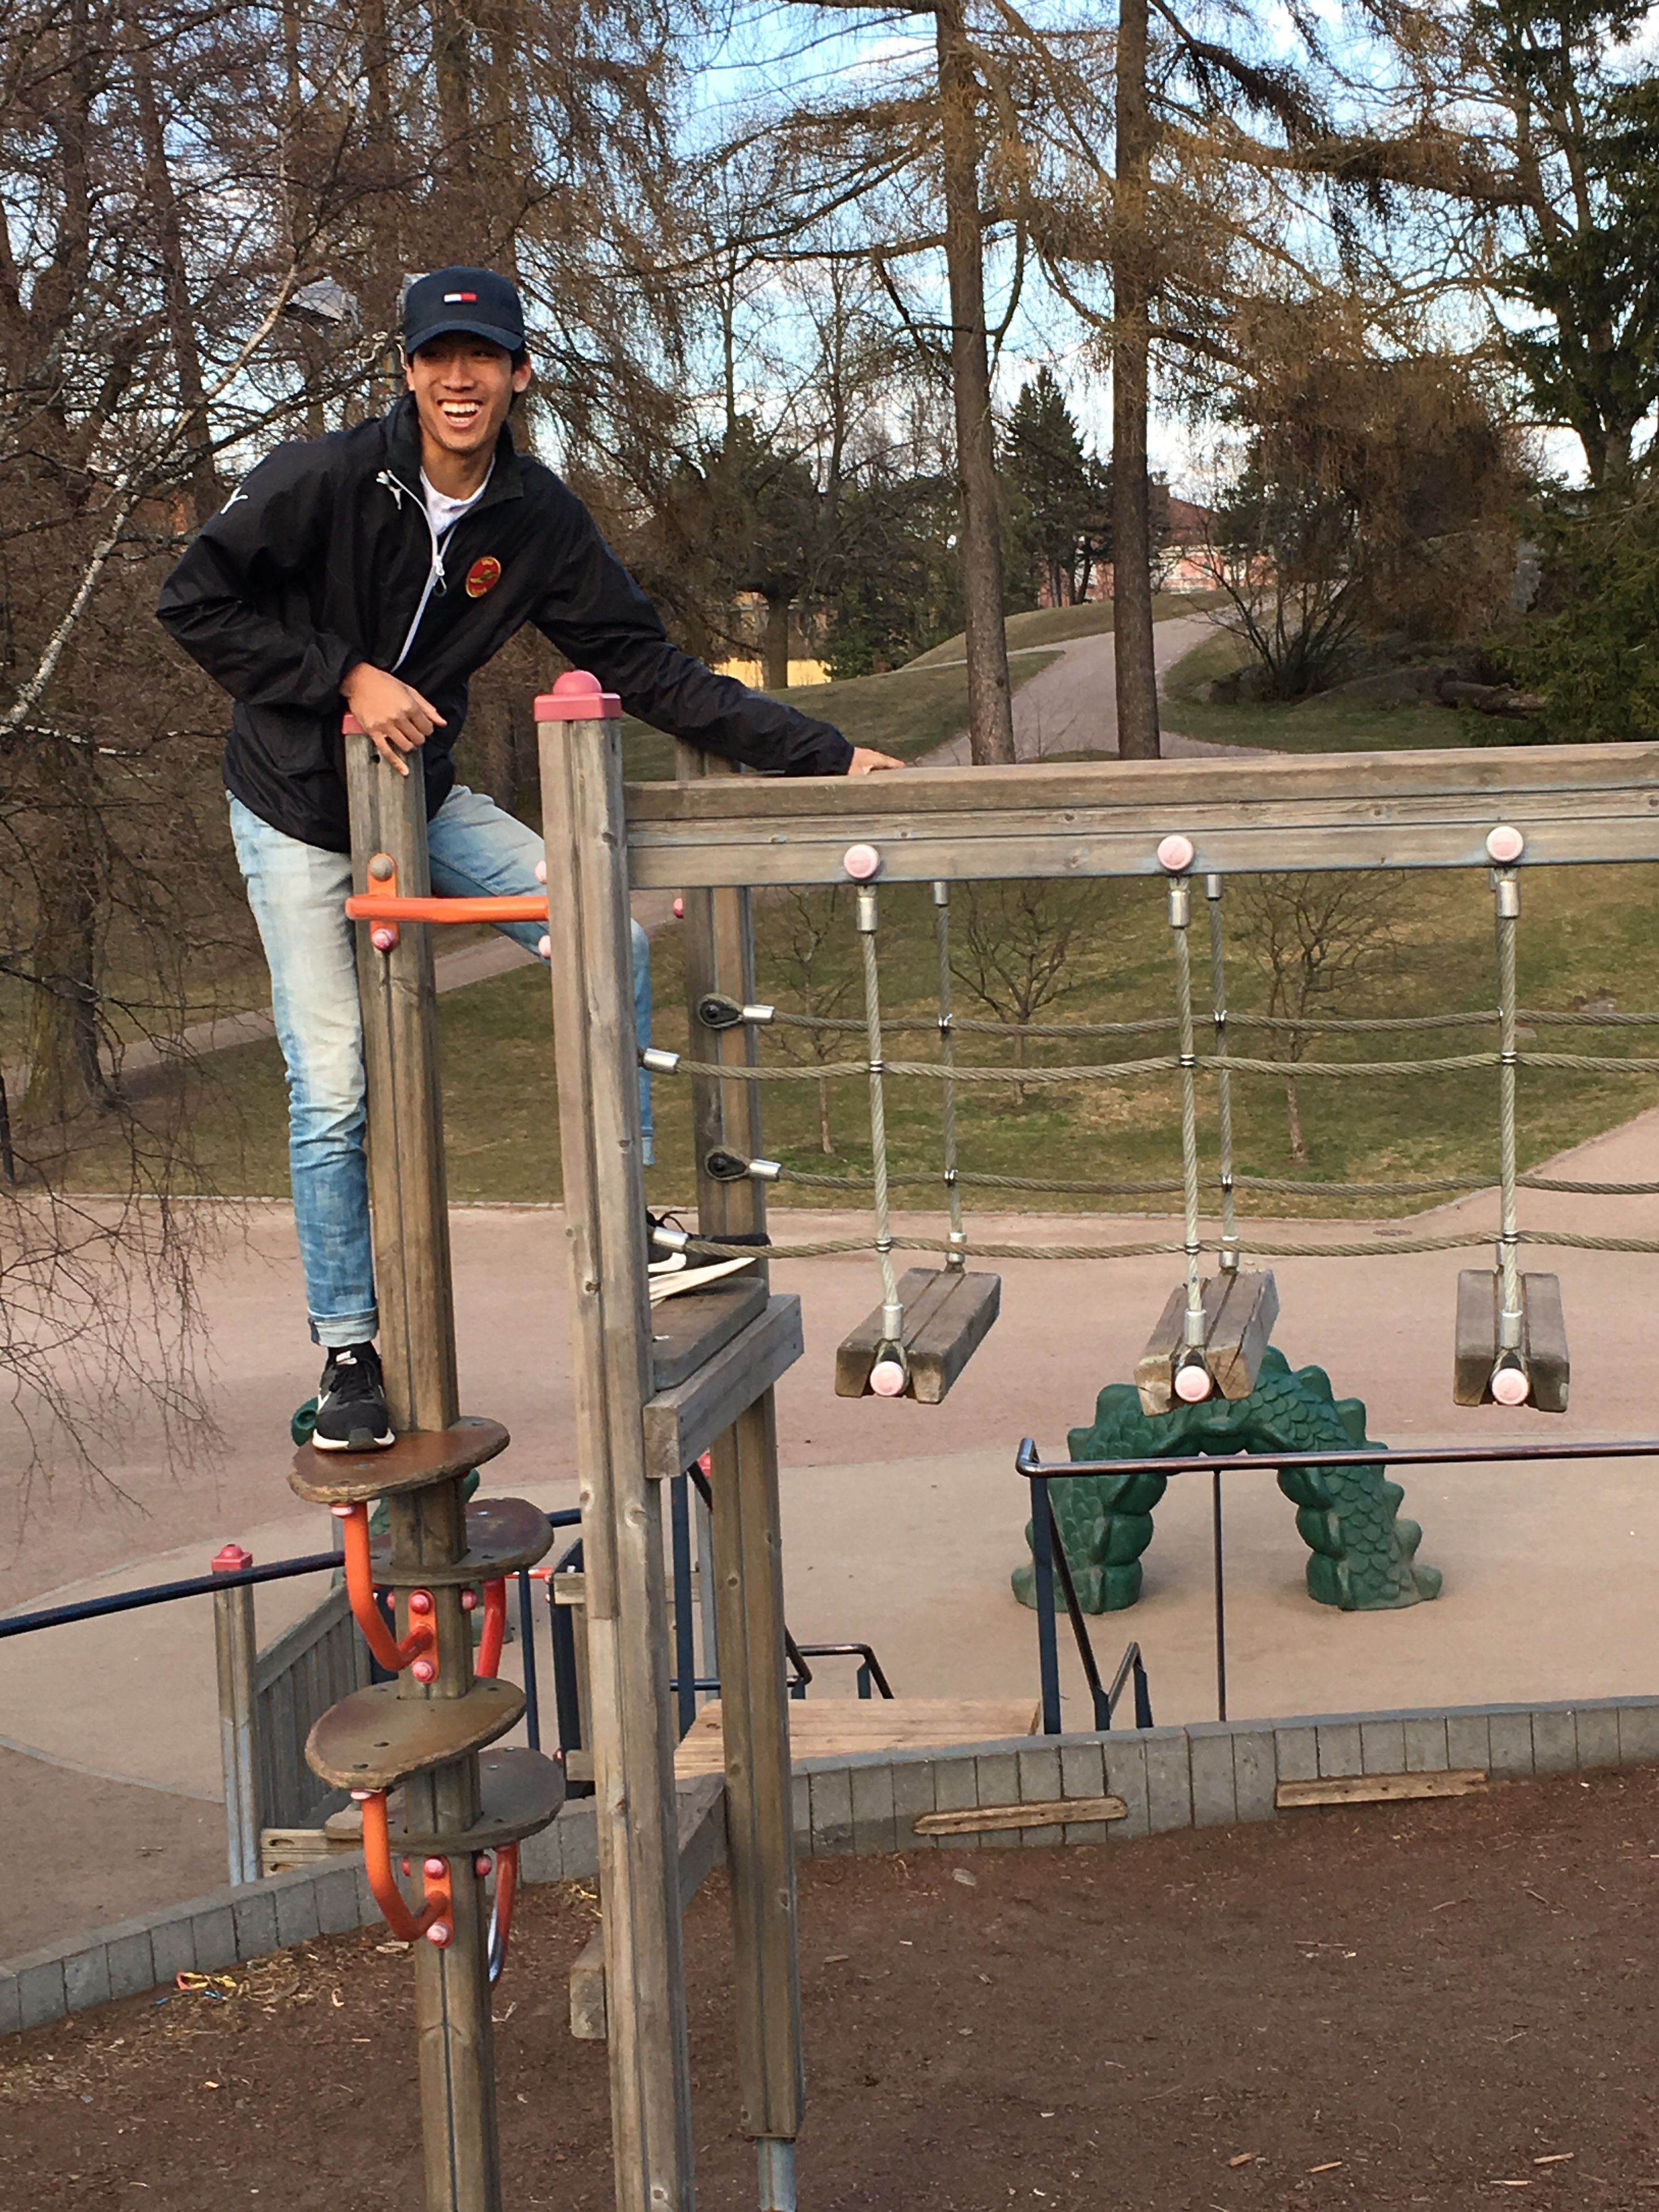 full length, teenager, tree, railing, one person, leisure activity, day, casual clothing, outdoors, lifestyles, standing, sport, real people, skill, skateboard park, people, adult